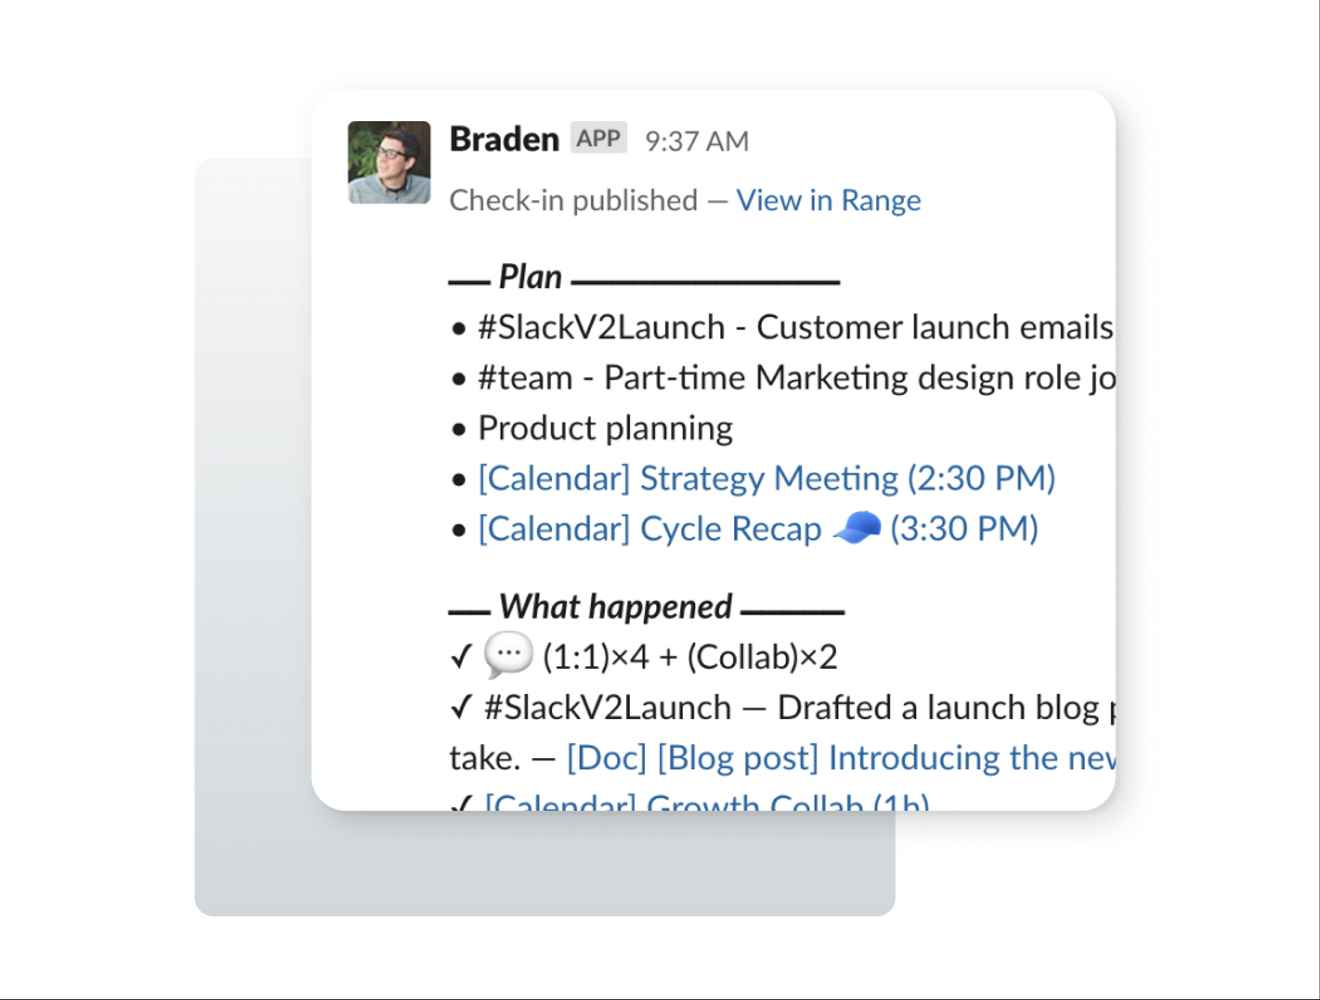 Image of a Range Check-in shared in Slack